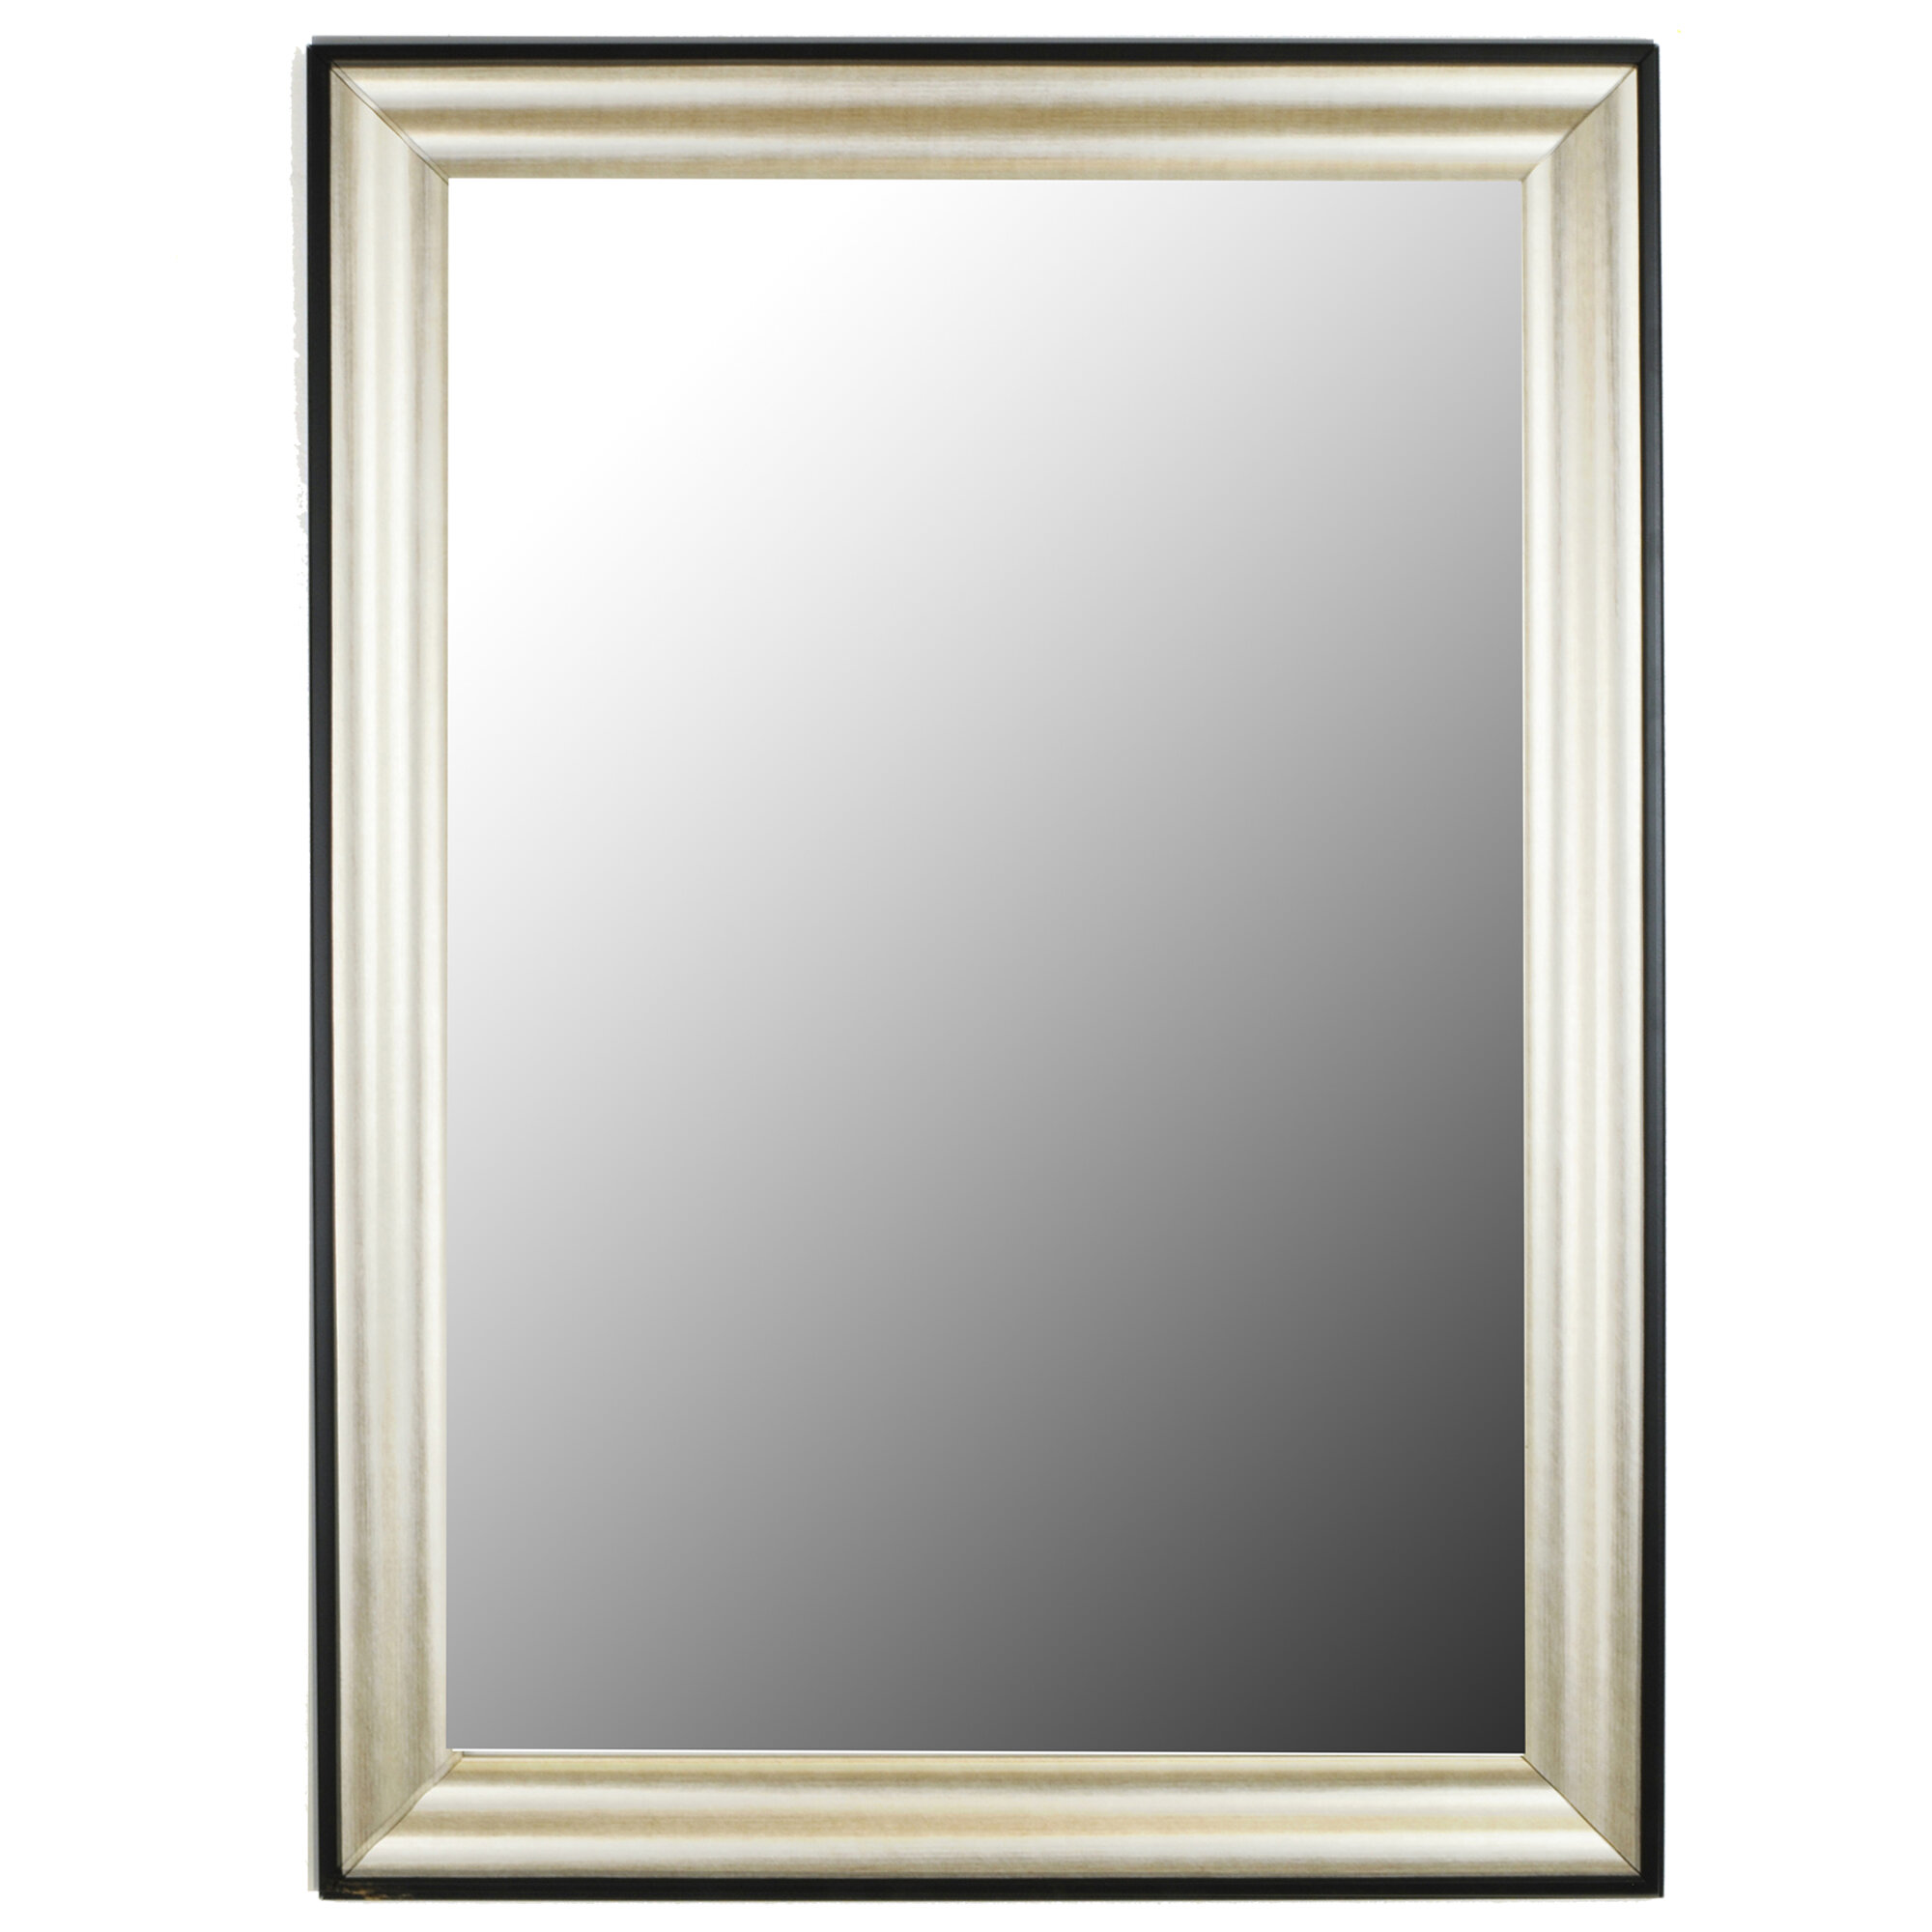 Second look mirrors silver rain black accent trim framed for Looking for wall mirrors